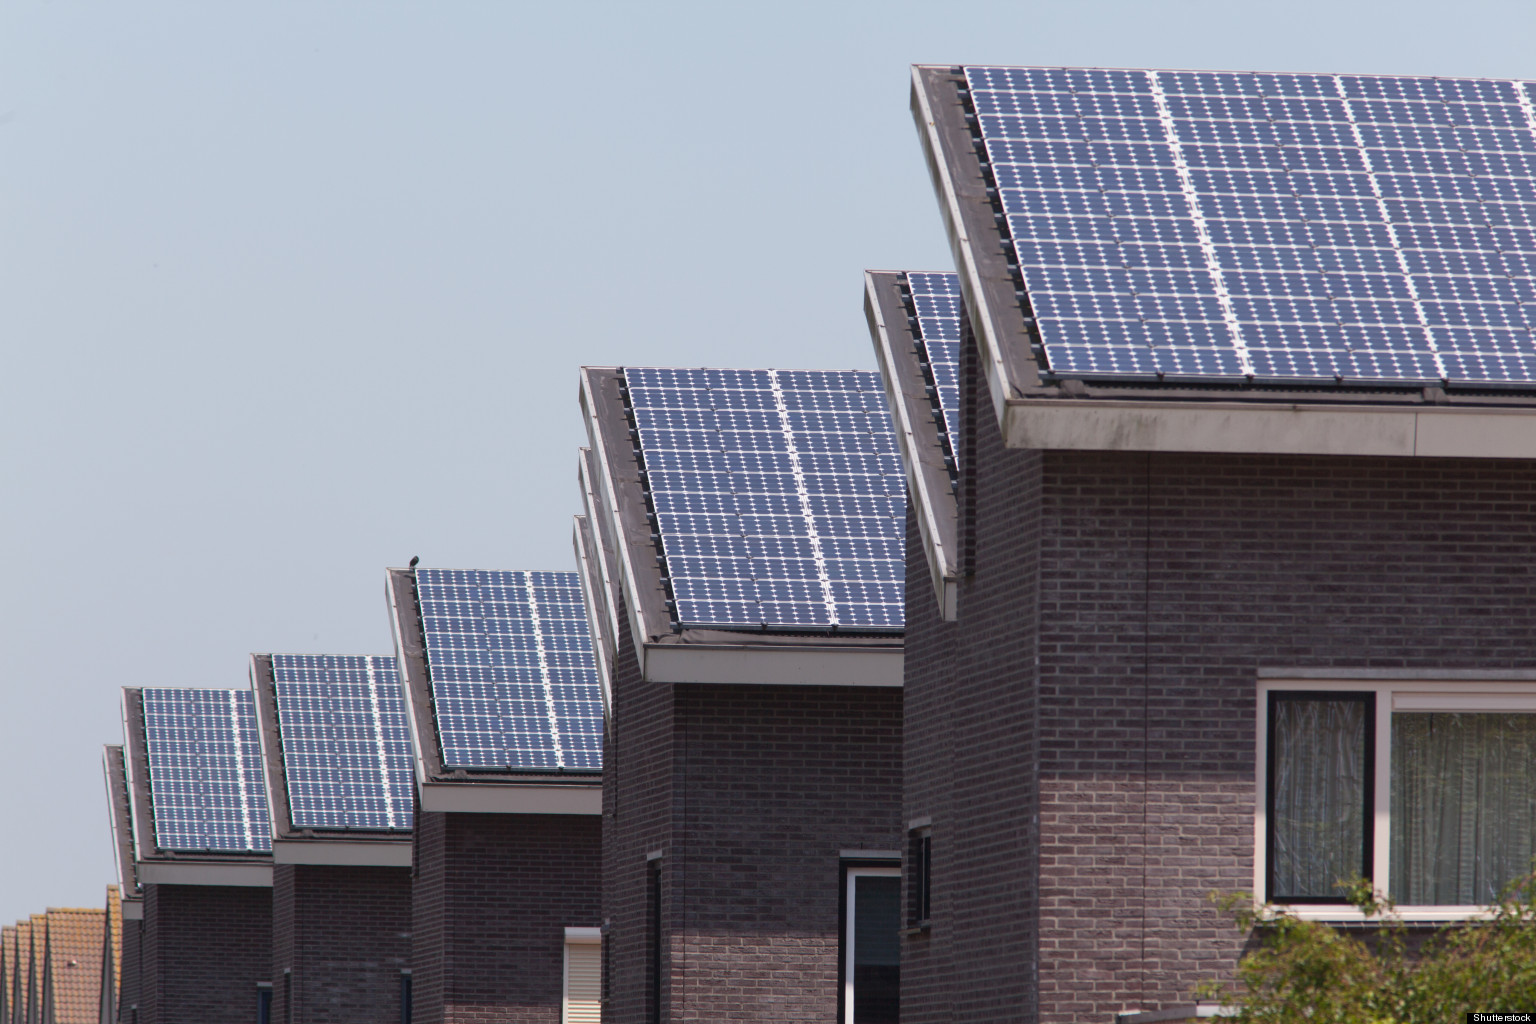 Solar Panel Installations More Likely In Homes With Energy